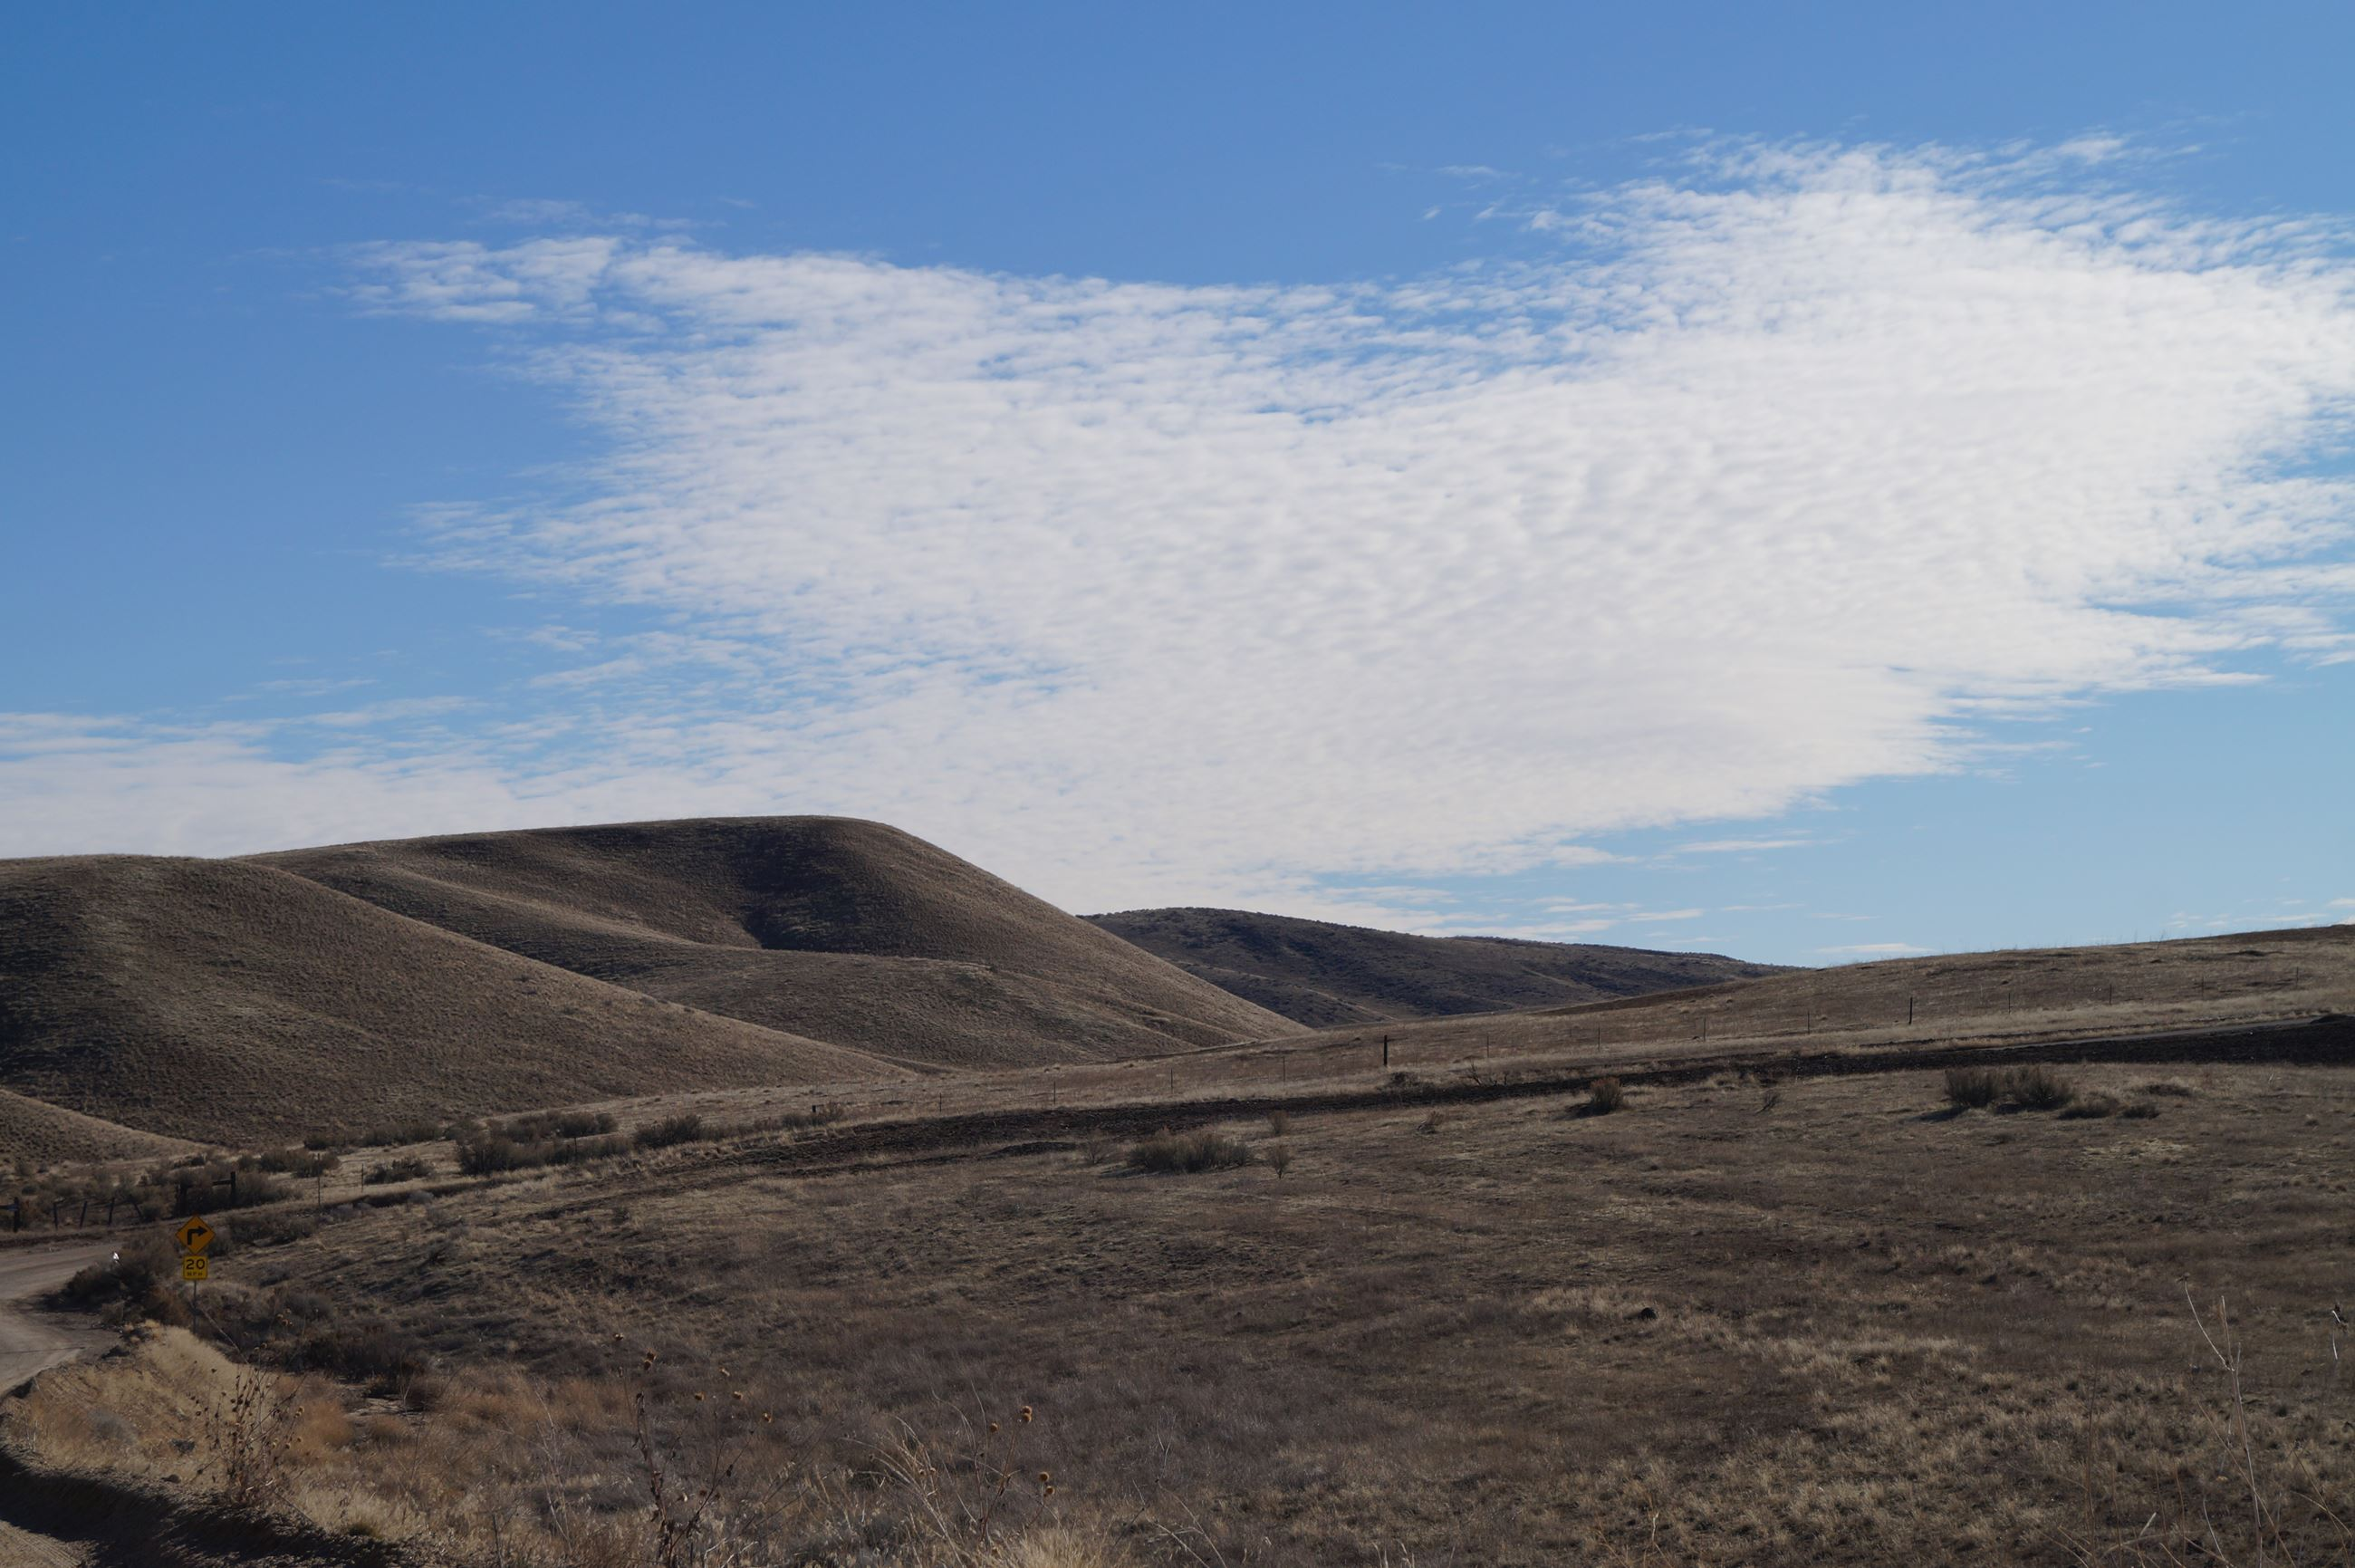 A photo of the Eagle Foothills with blue sky and clouds.